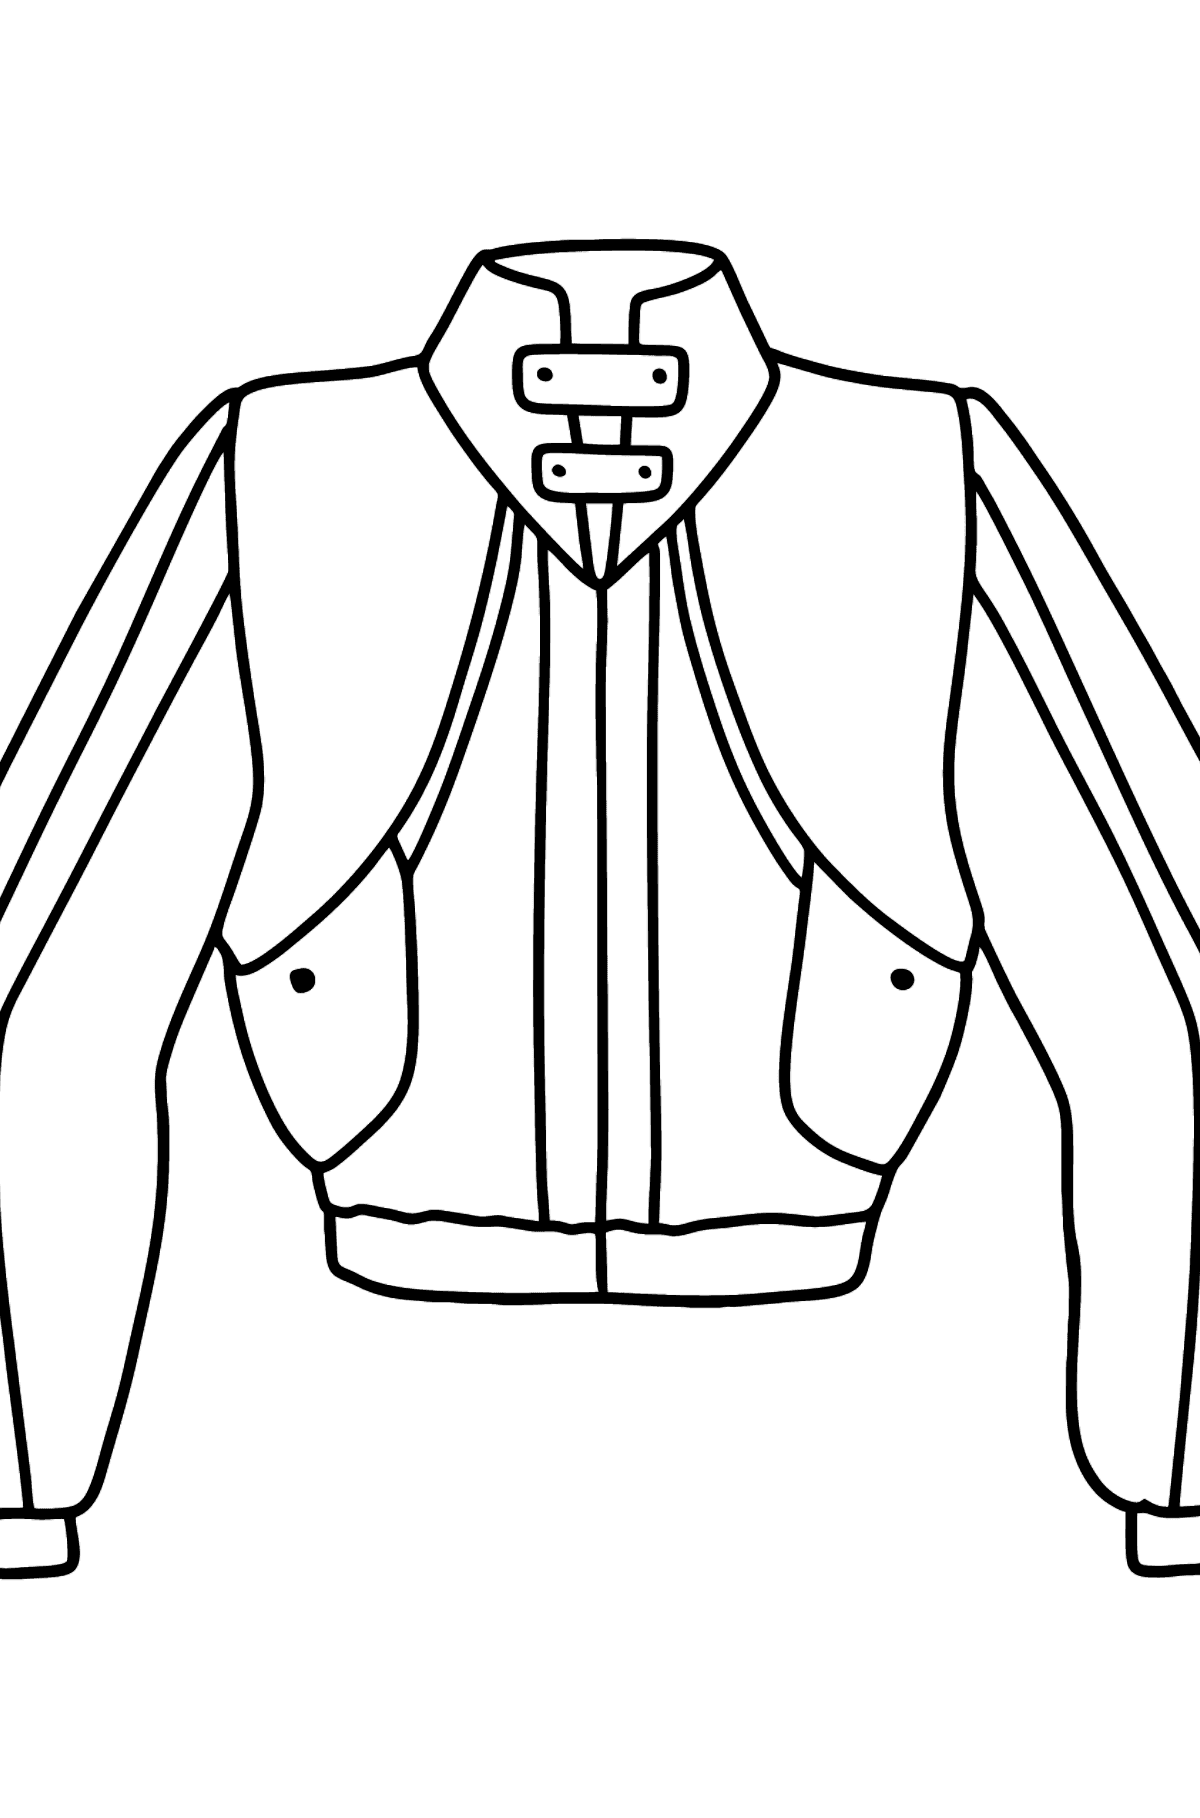 Jacket coloring page - Coloring Pages for Kids